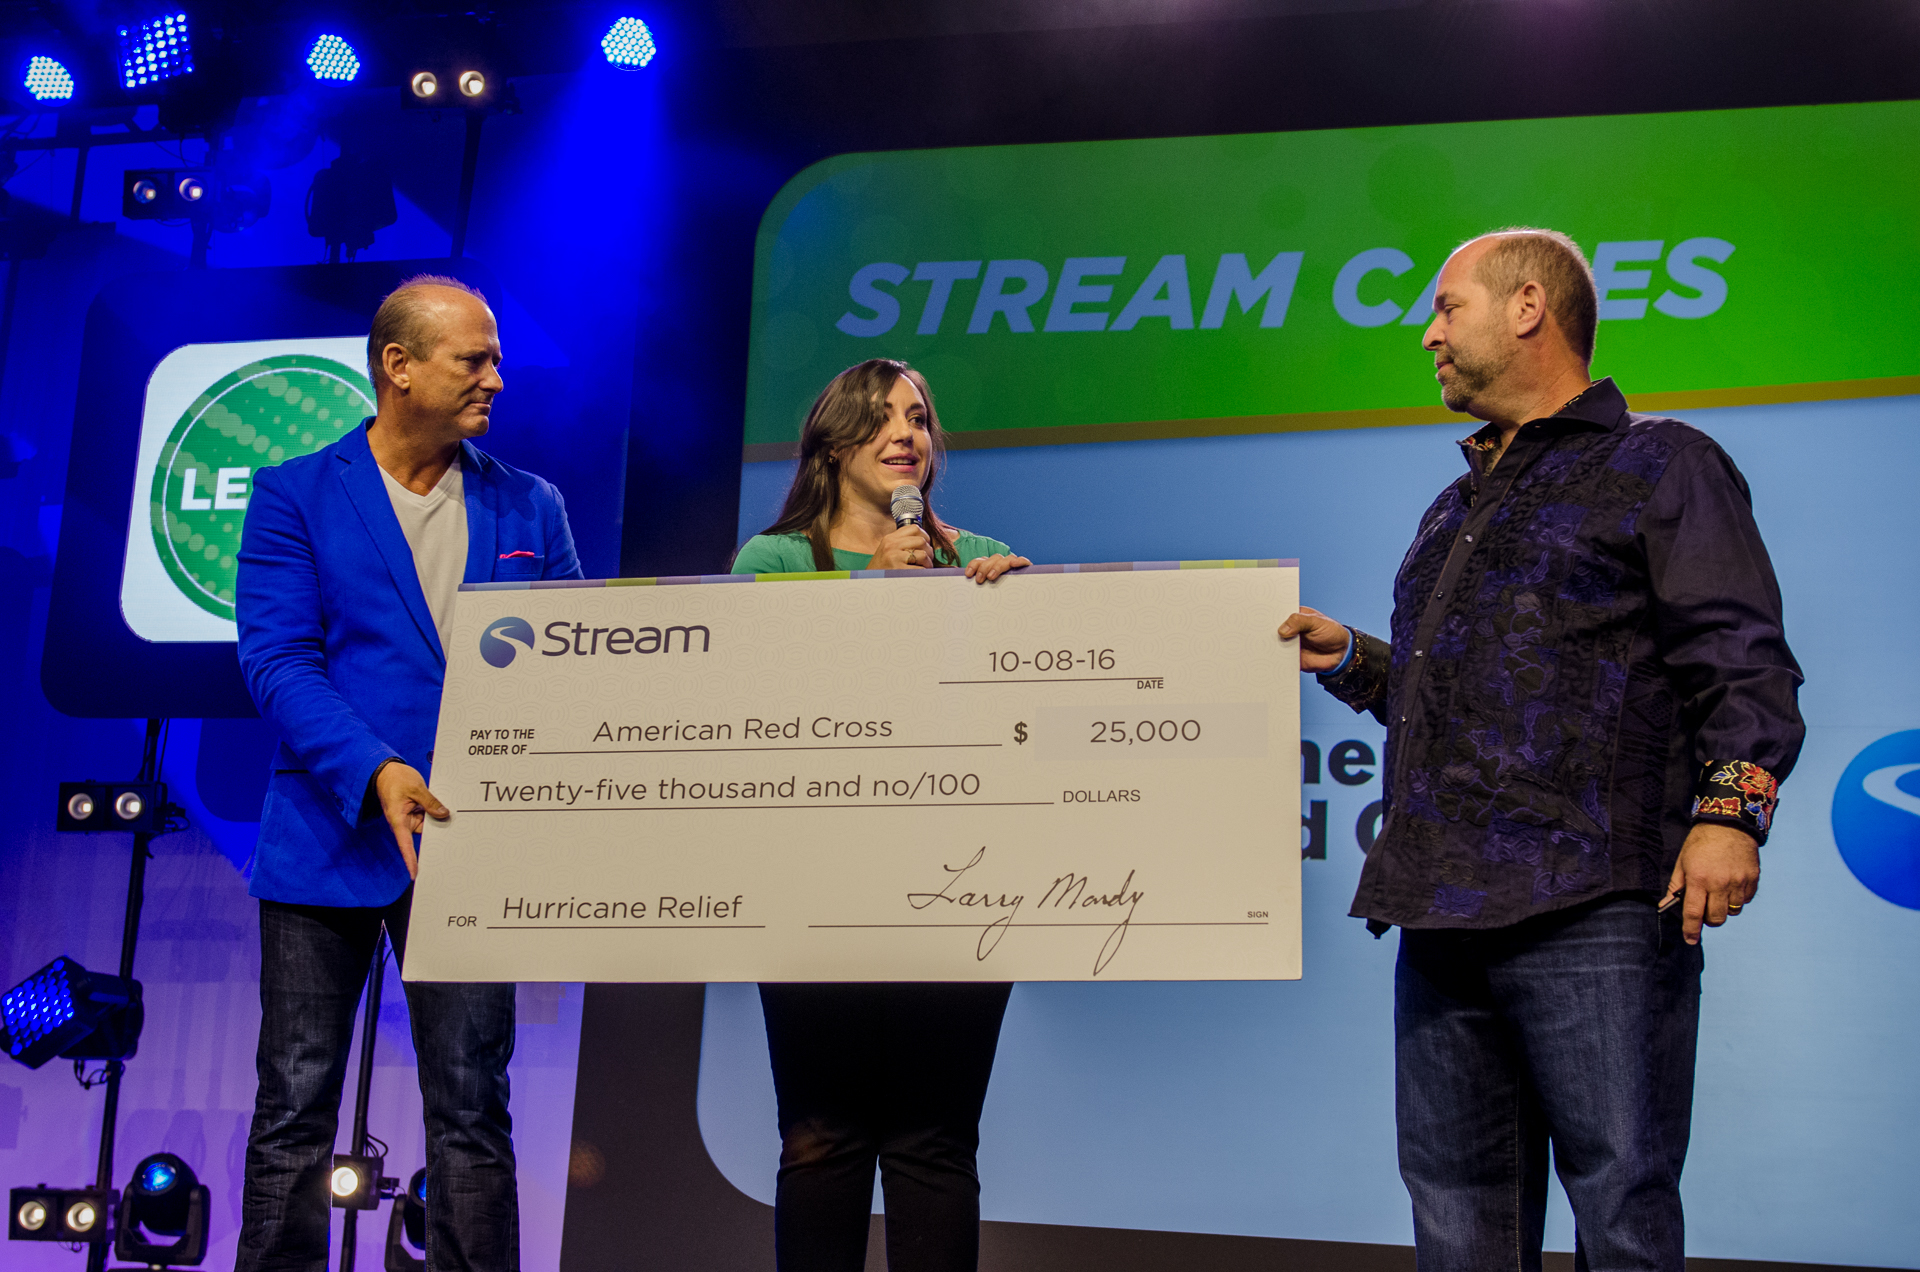 Larry Mondry and Dan O'Malley of Stream present Natalie Valenti Butters of the American Red Cross North Texas Region with Stream's donation. (Photo: Business Wire)